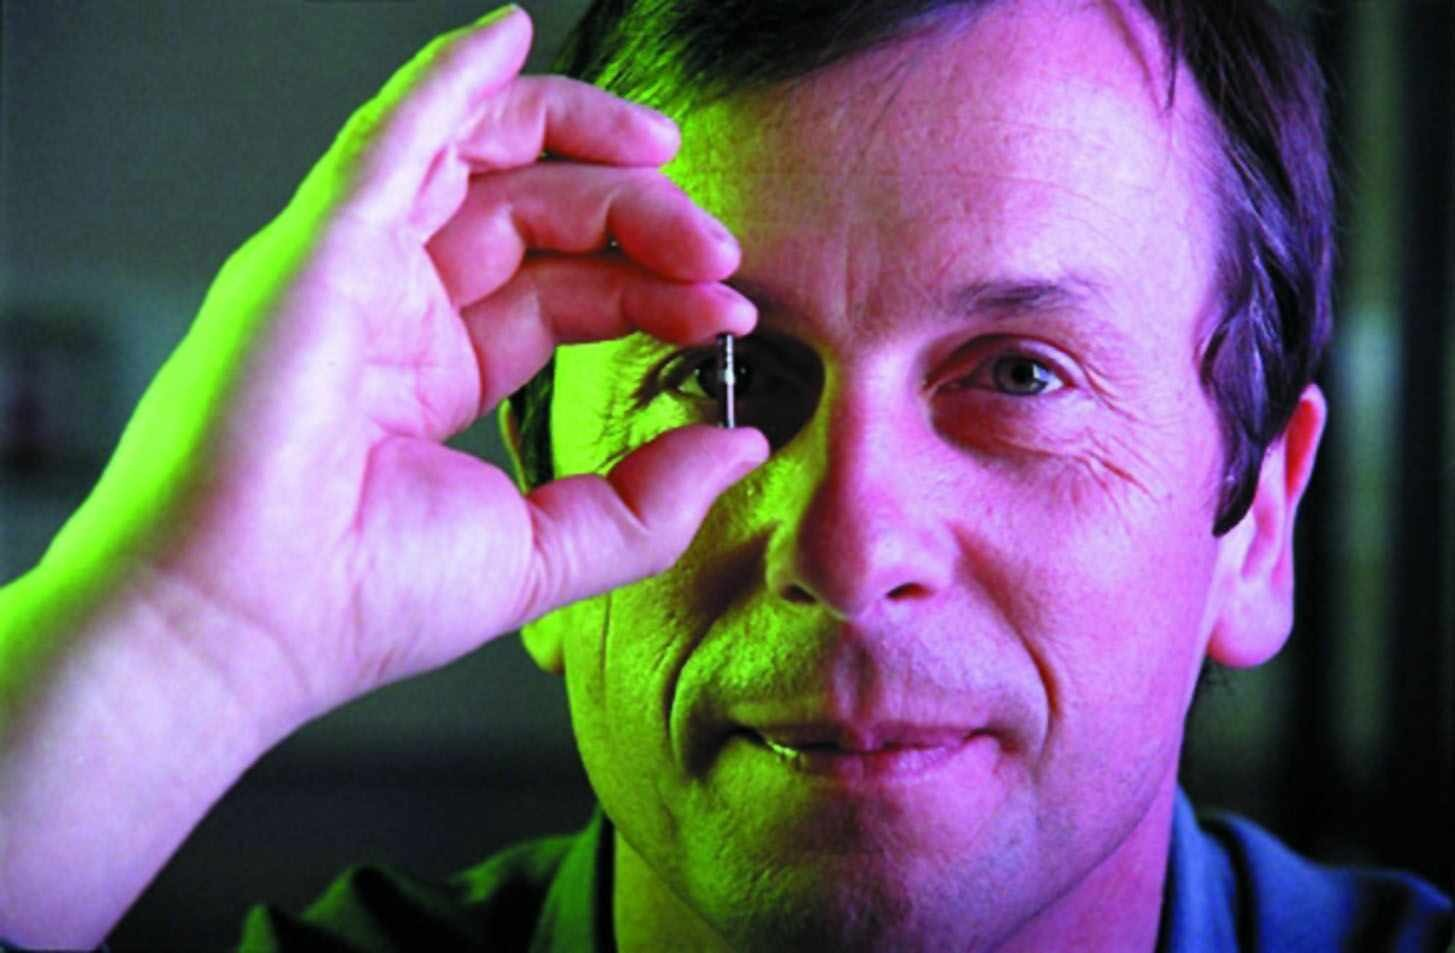 Kevin Warwick poses with a transponder that can be implanted in a human. Warwick already has a similar chip in his arm that allows him to control various appliances in his office, making him the world's first cyborg. (credit: Courtesy of Kevin Warwick)